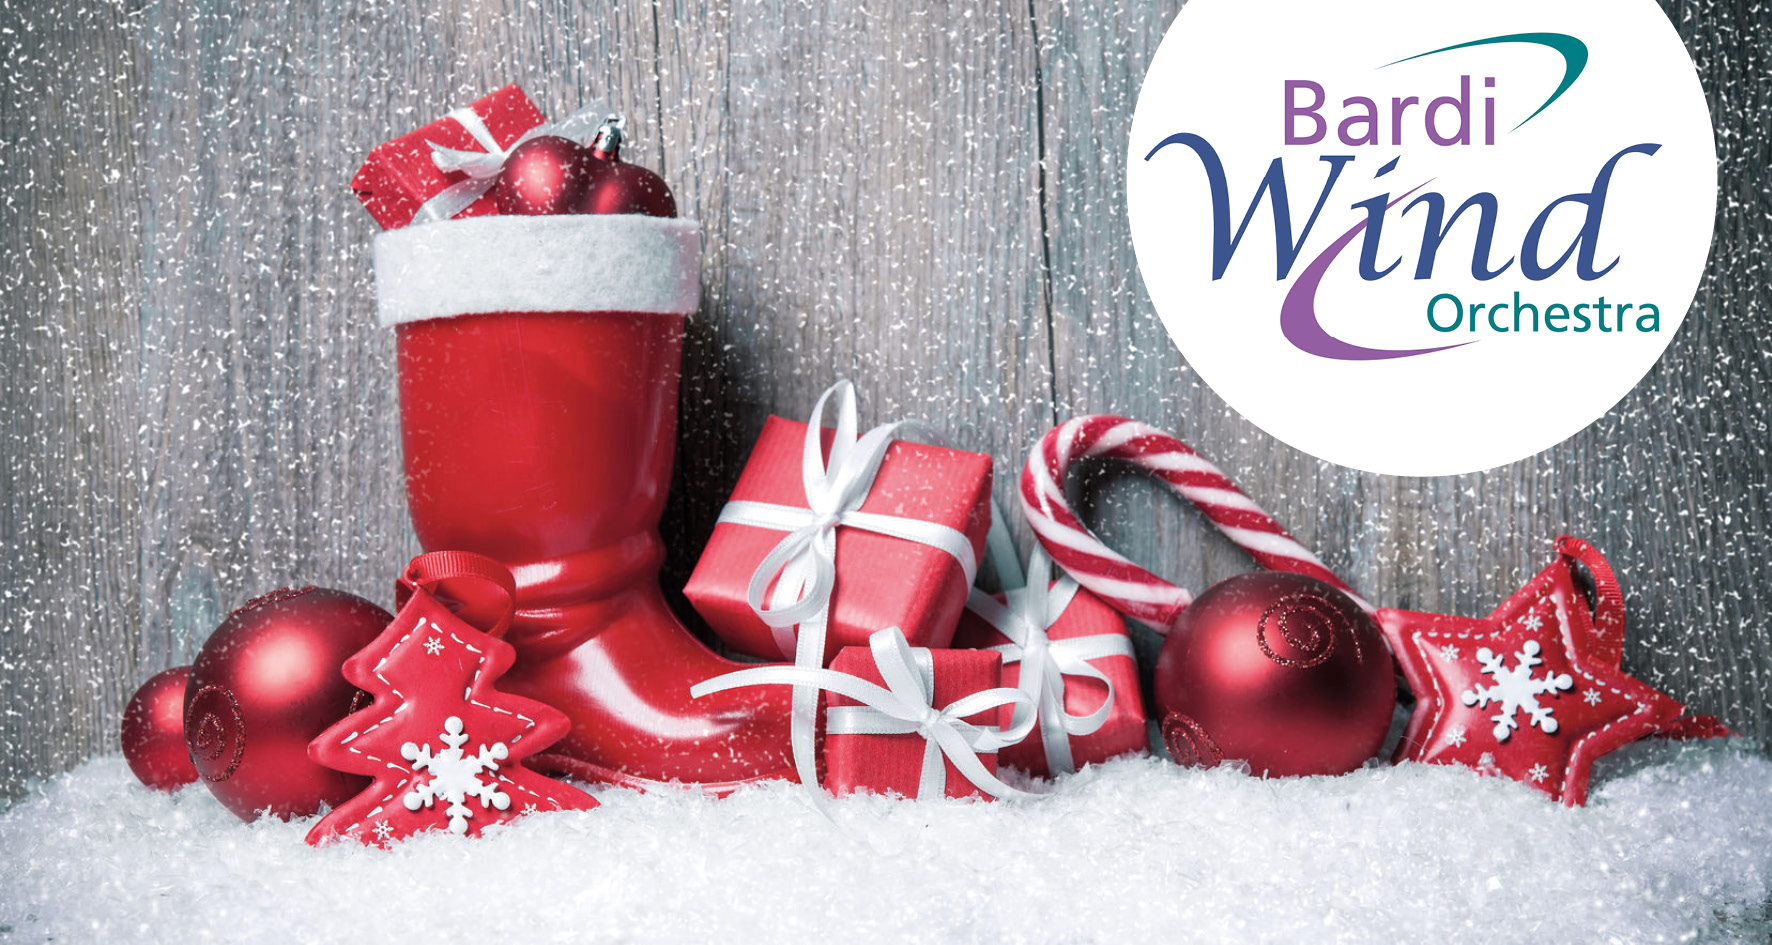 Bardi Wind Orchestra Christmas Festival Concert 2017